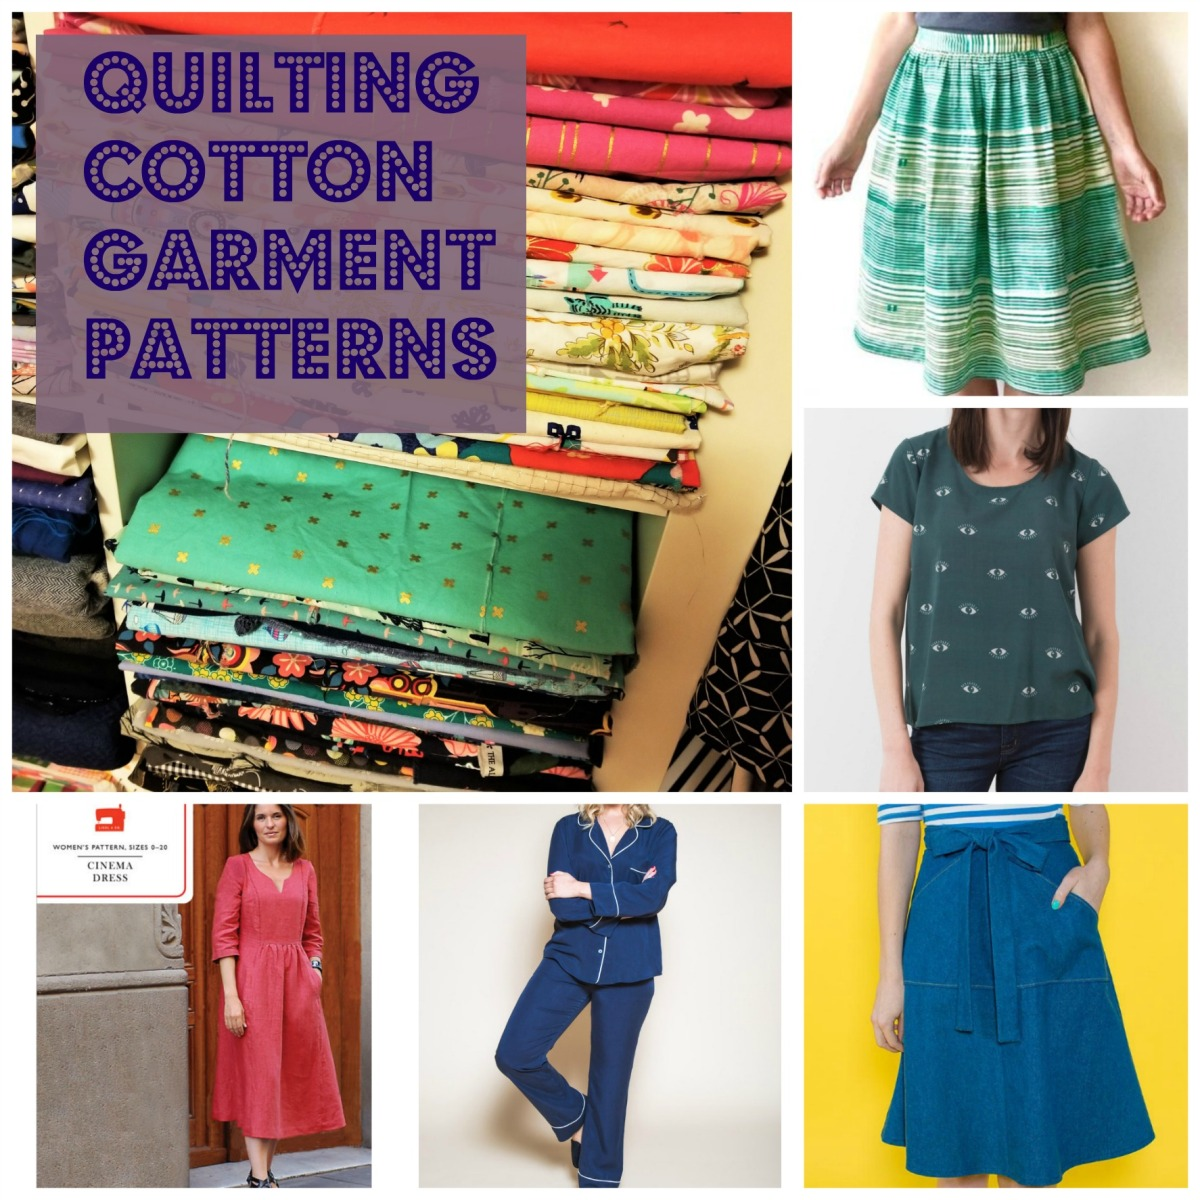 Indie garment patterns that use quilting cotton   Belle Citadel